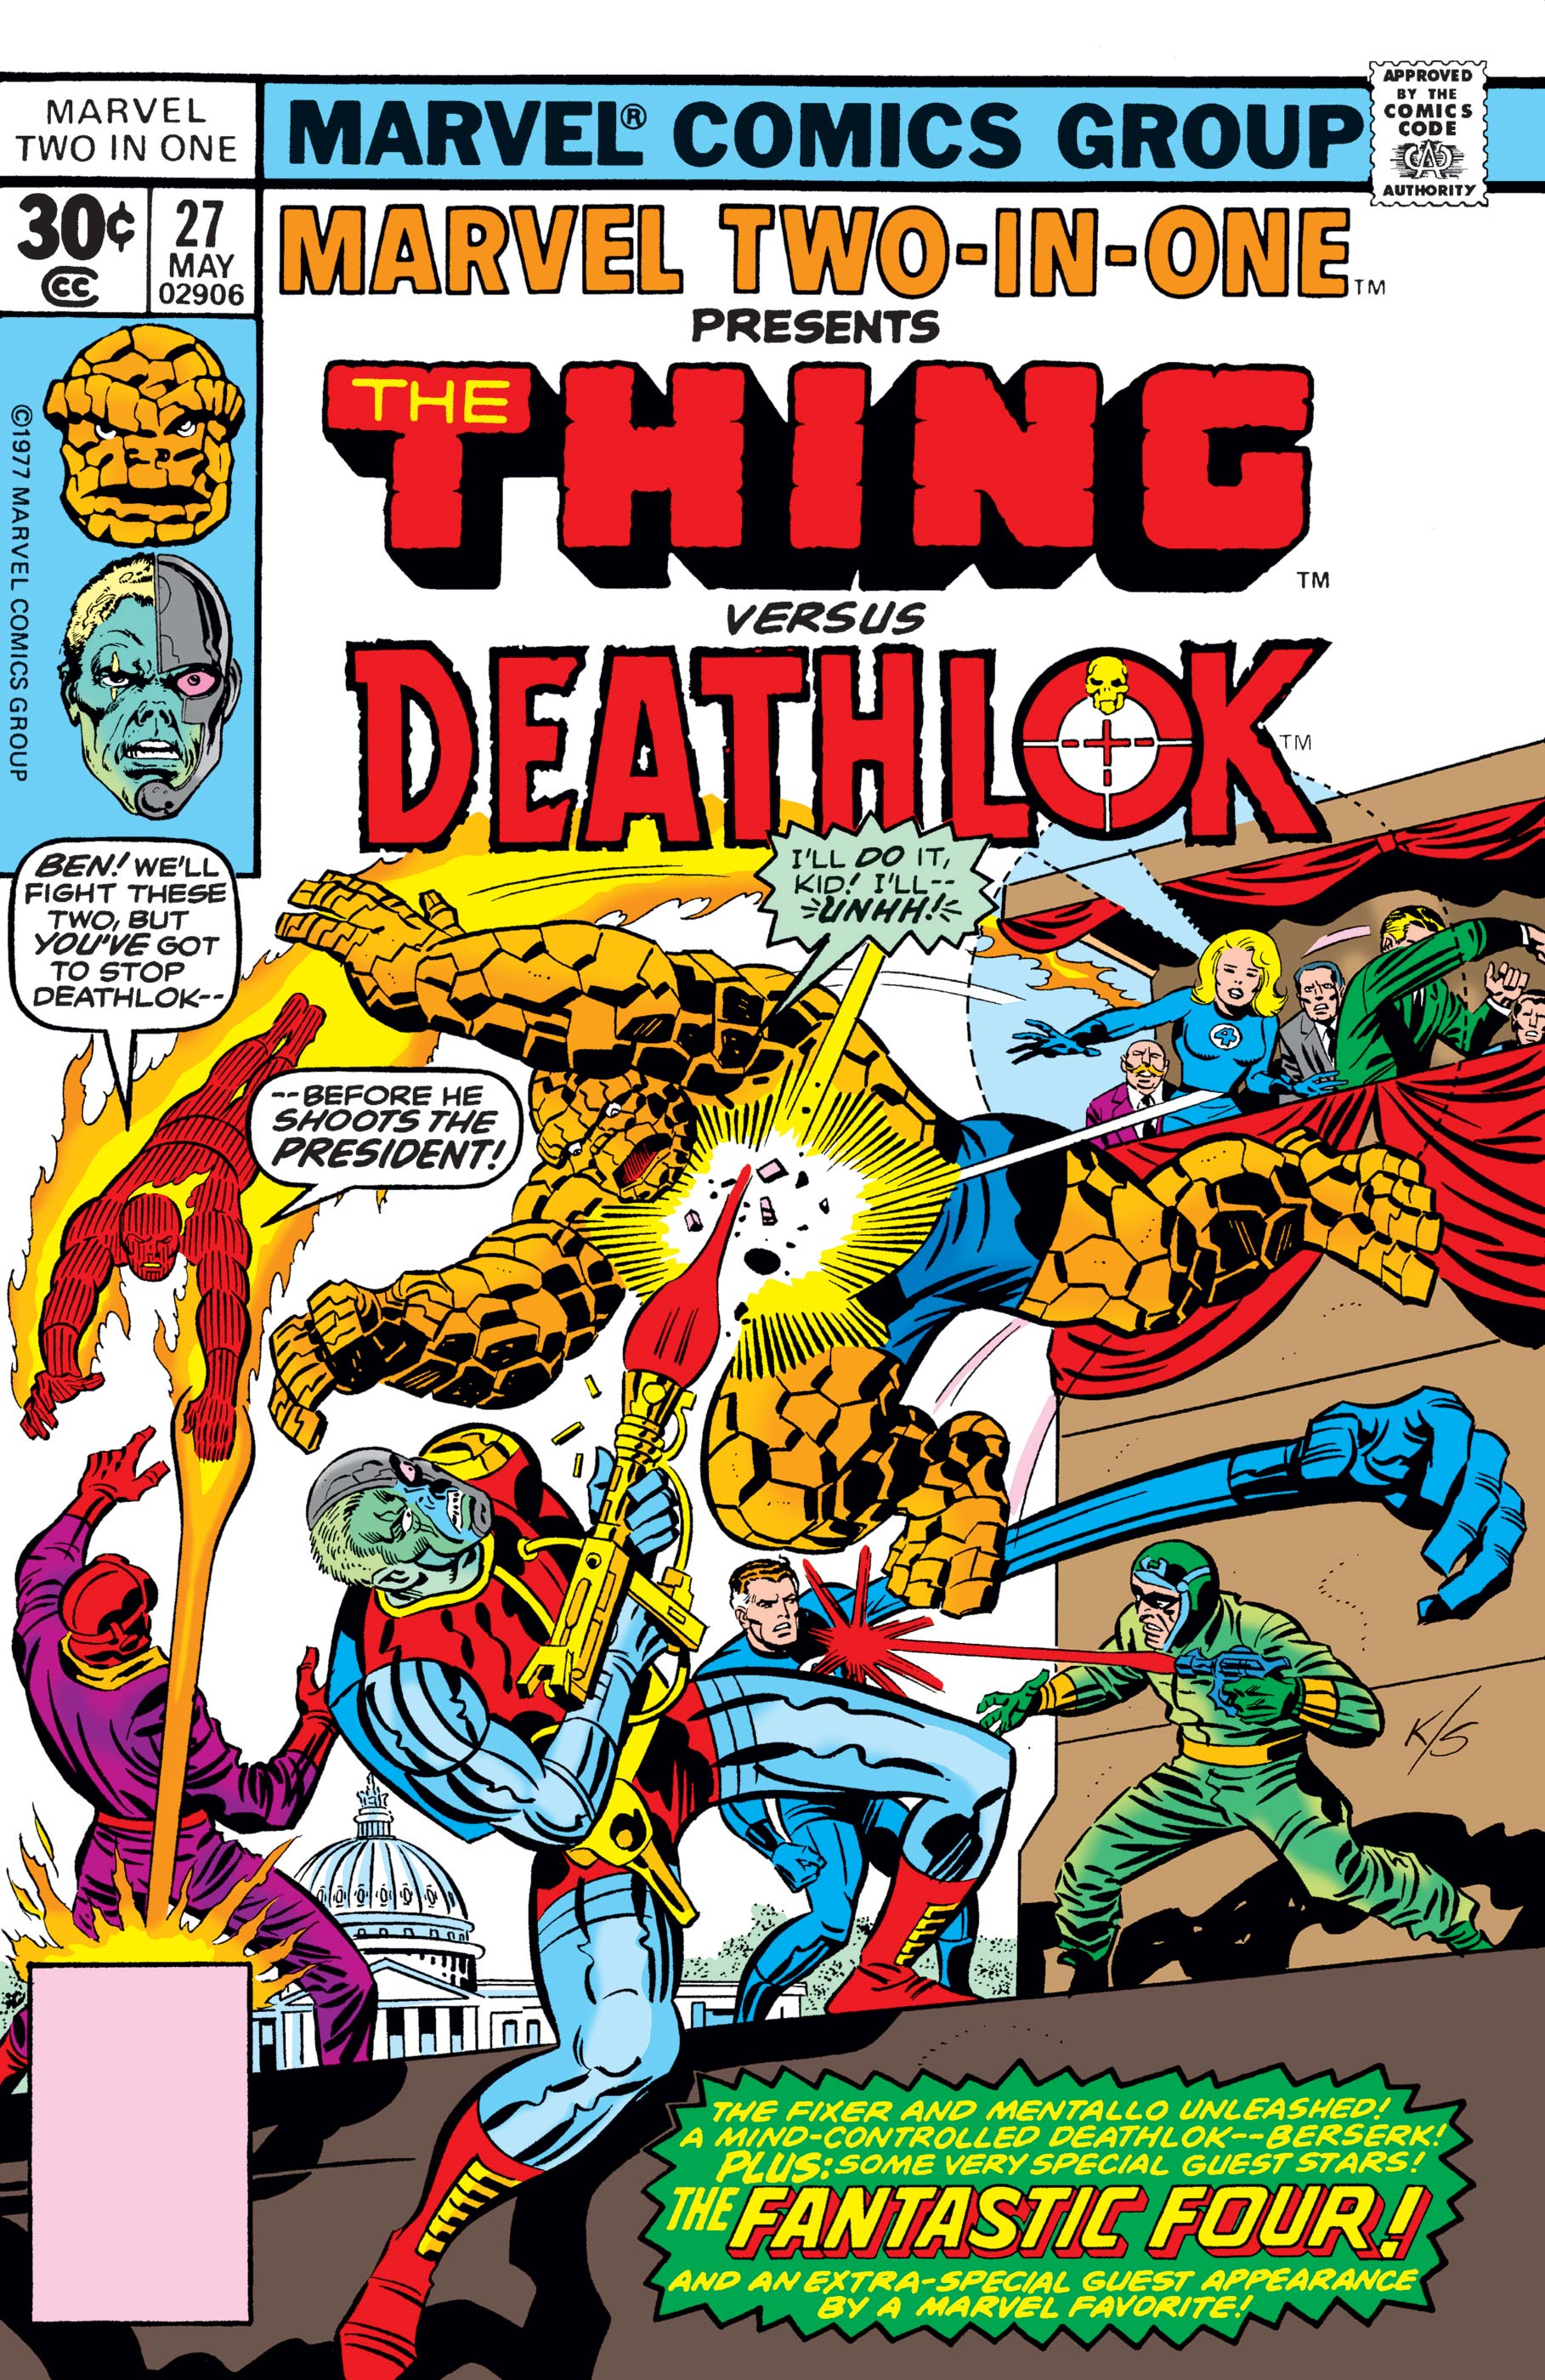 Marvel Two-in-One (1974) #27